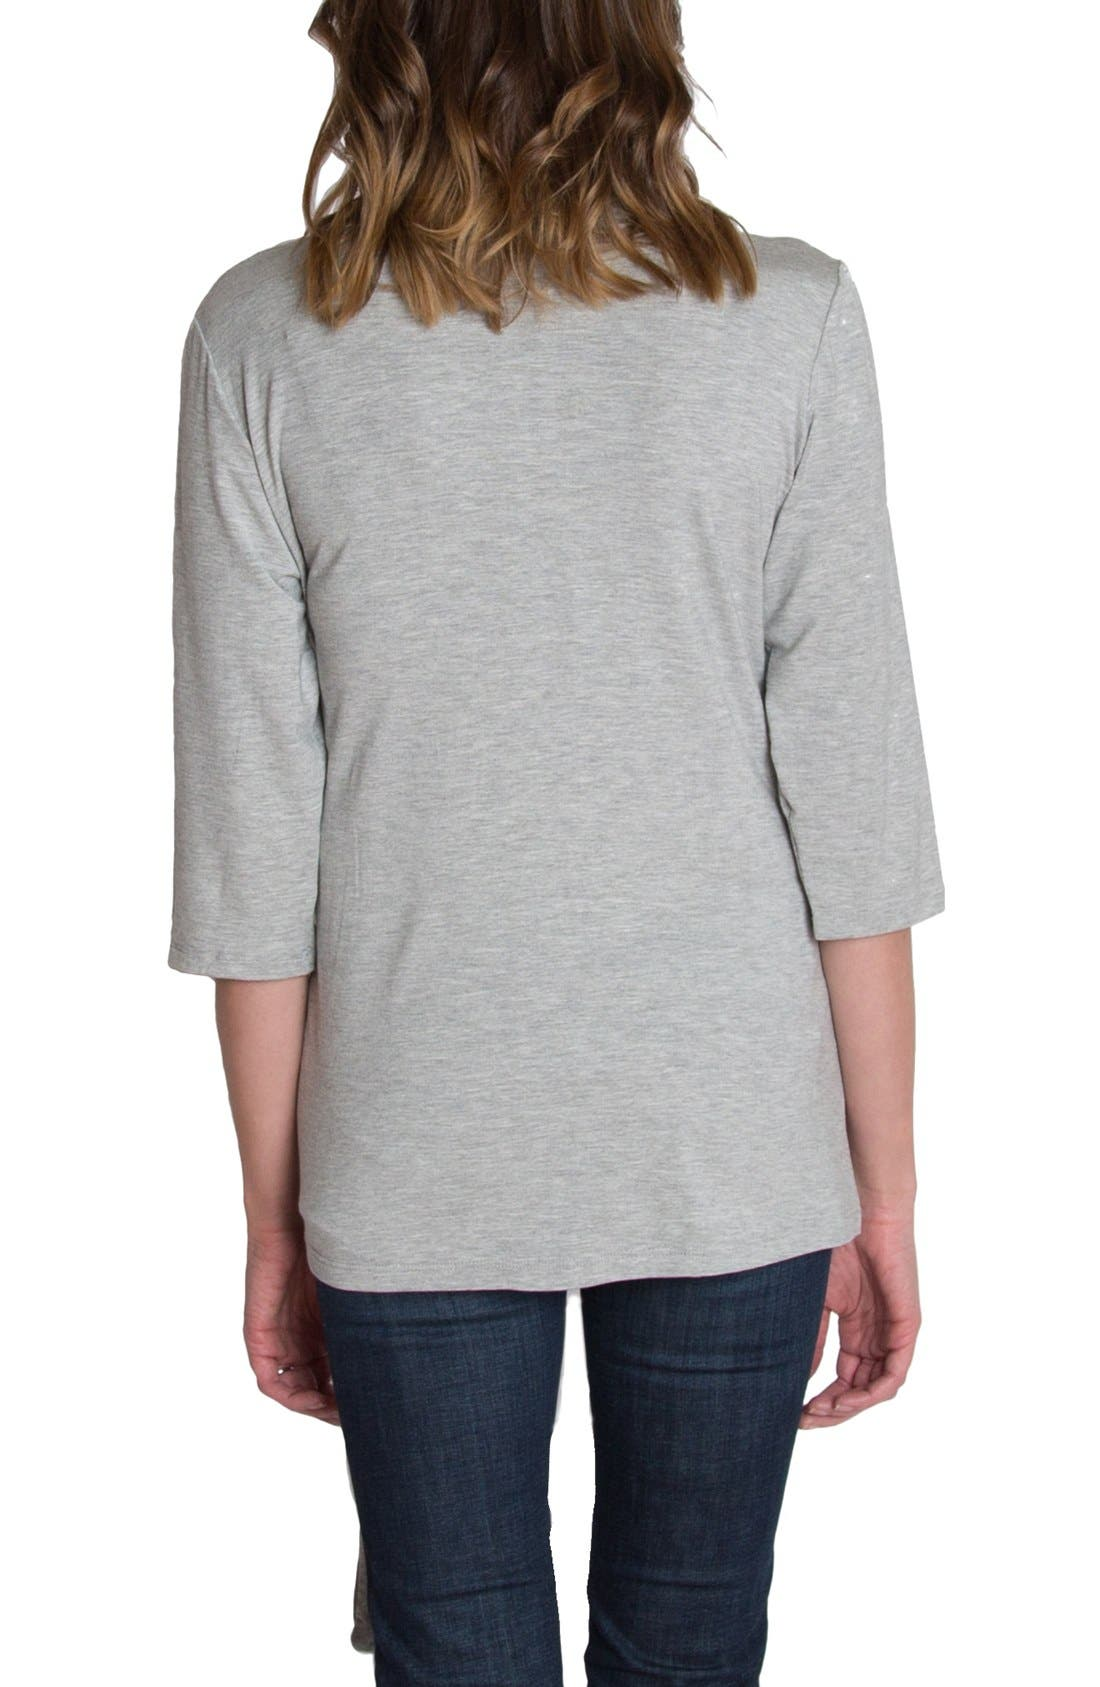 Whimsical Nursing Wrap Top,                             Alternate thumbnail 2, color,                             HEATHER GRAY